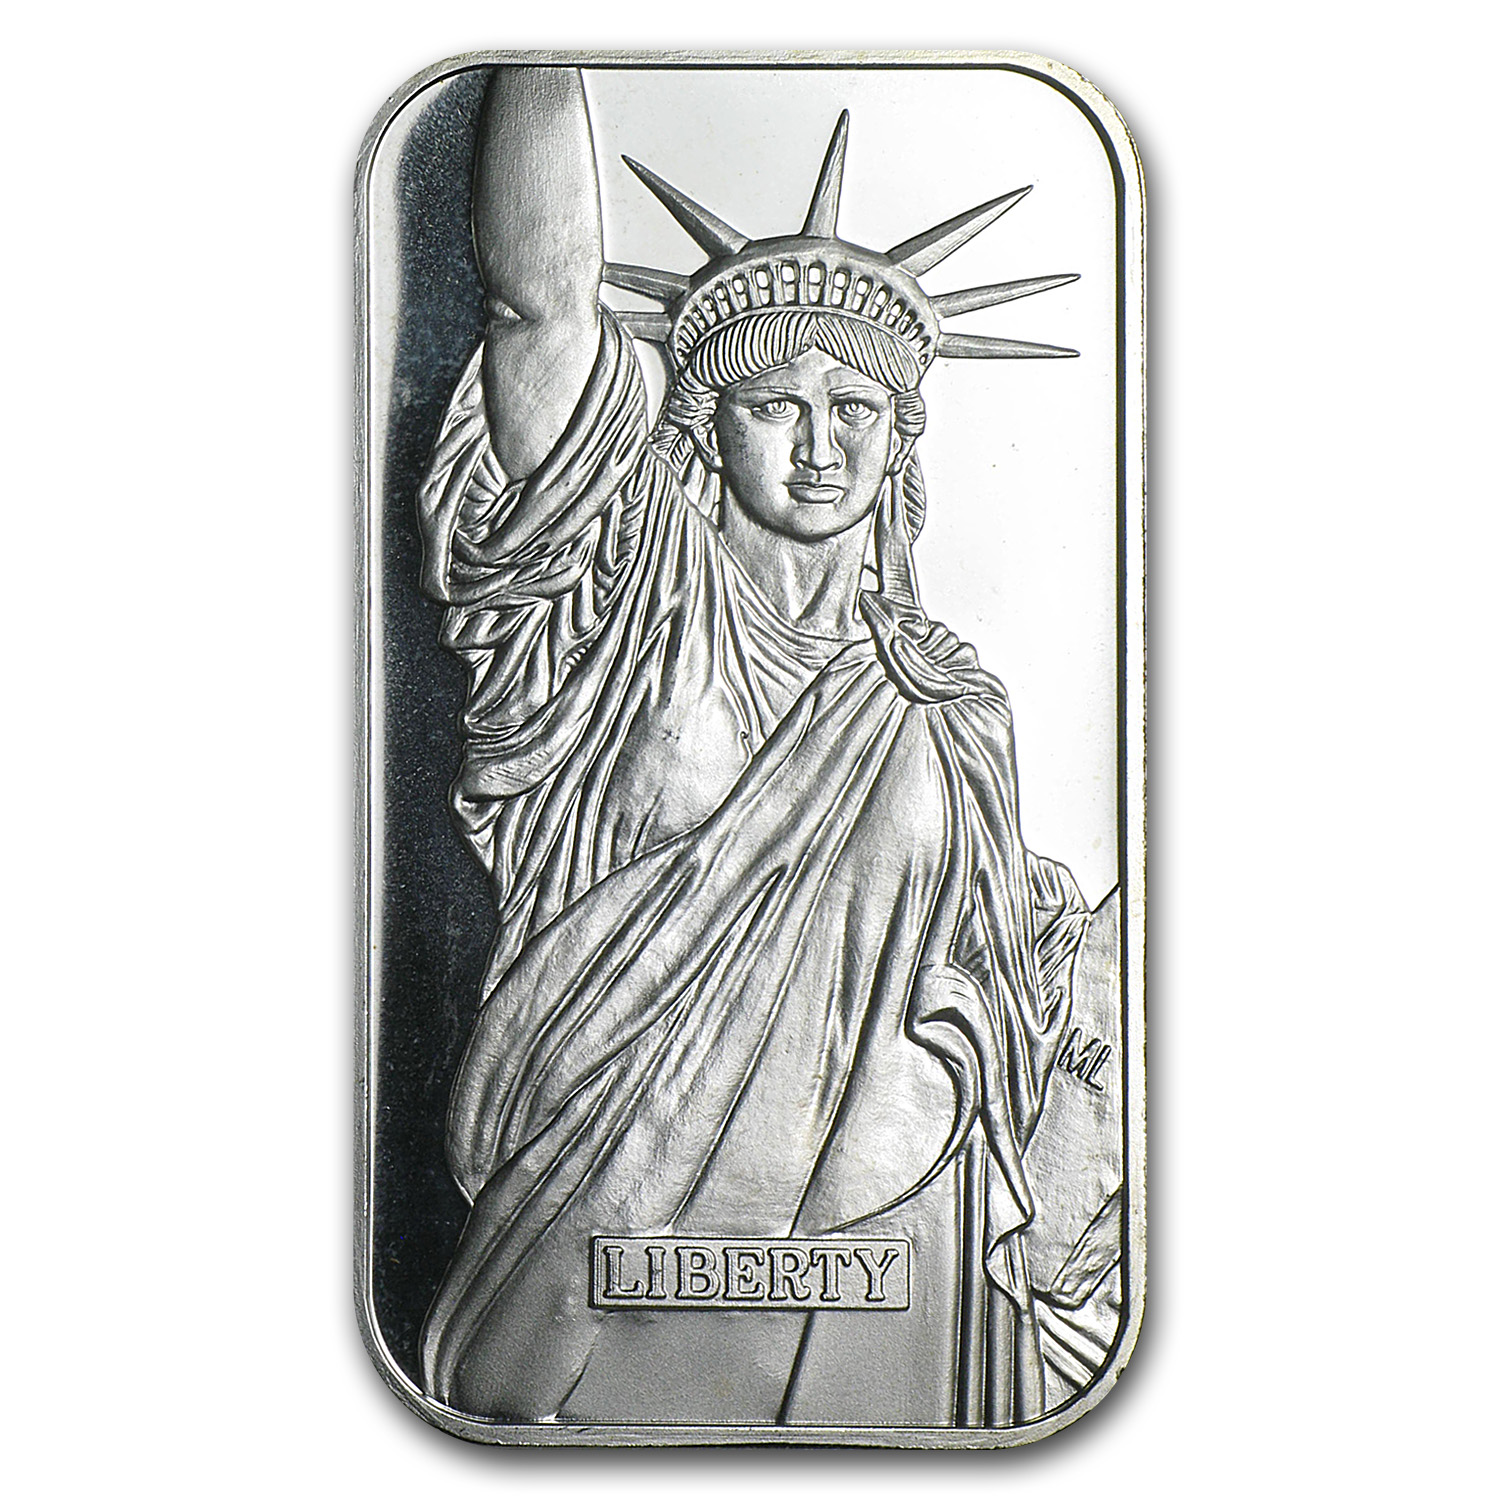 1 oz Silver Bars - Engelhard (Statue of Liberty/MTB)